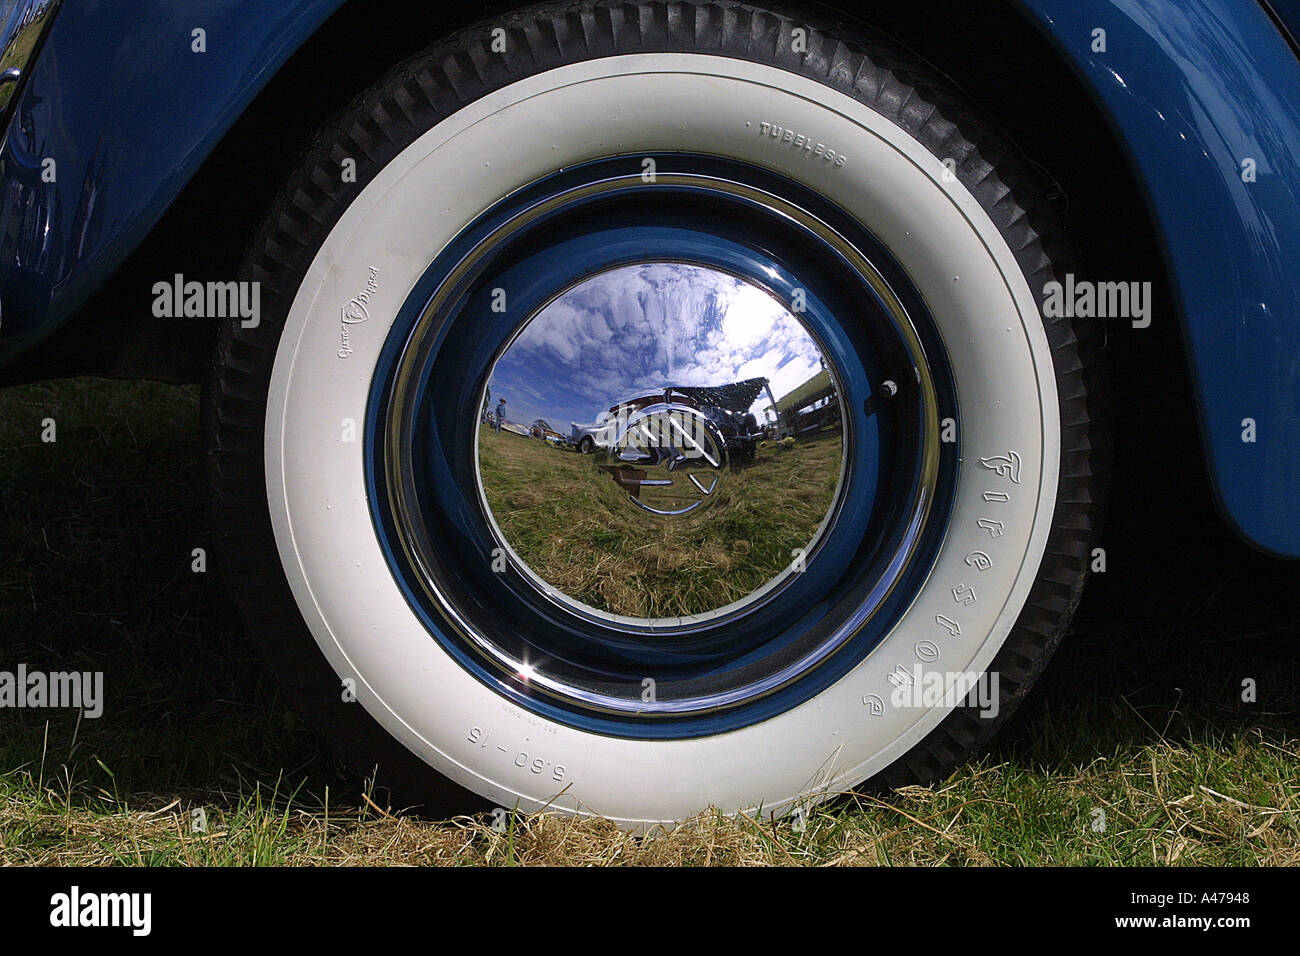 Shiny Hubcap Stockfotos & Shiny Hubcap Bilder - Alamy